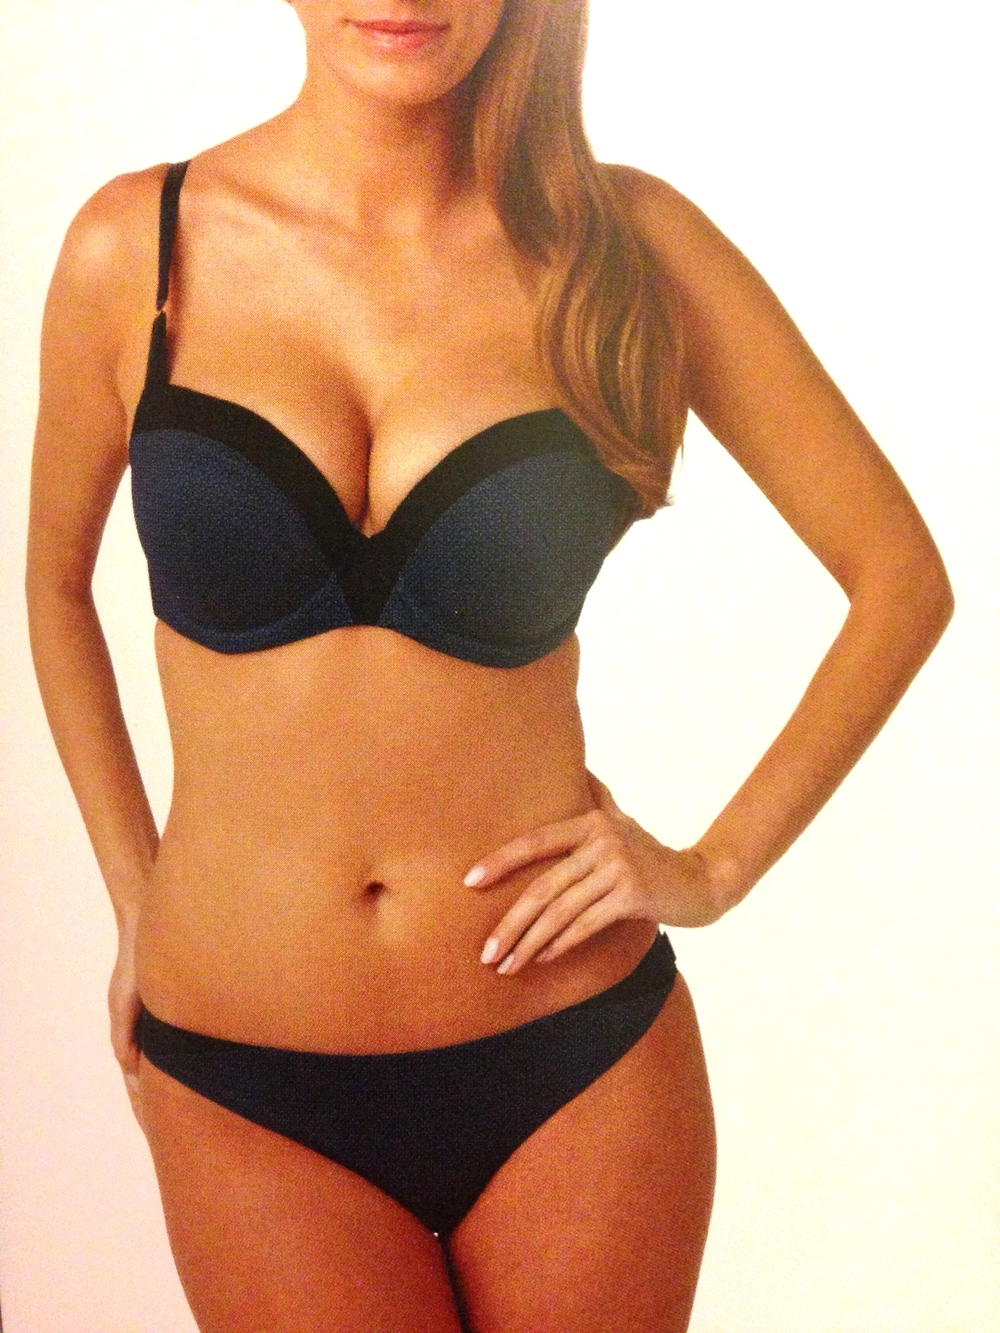 Adriana Moulded Sweetheart Bra in Blue/Black, 28-38 D-G, and Brazilian Brief, 8-18